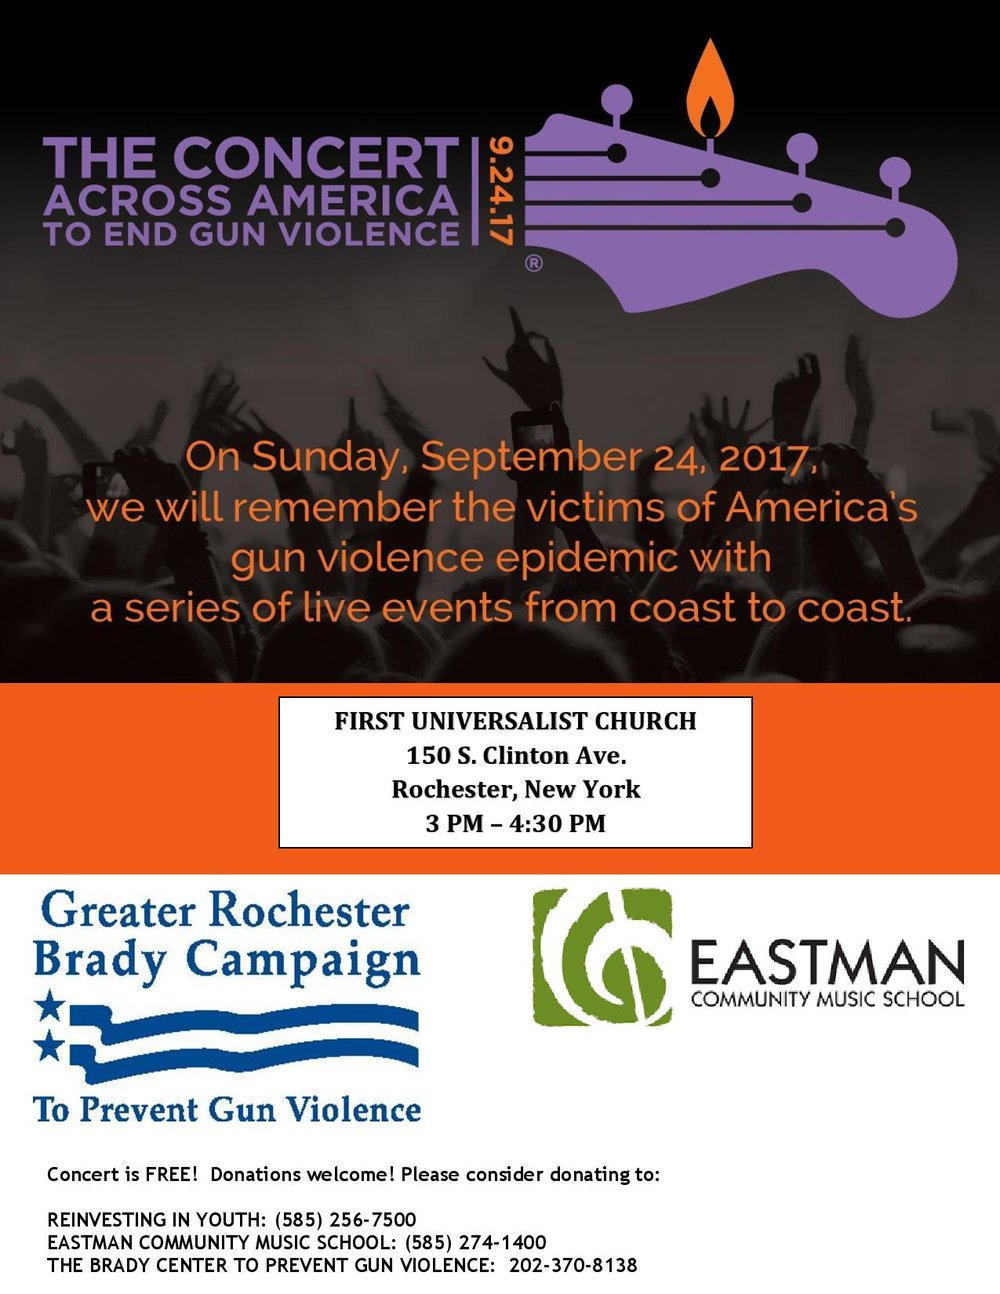 ROCHESTER CONCERT ACROSS AMERICA FLYER REVISED FINAL COPY-page-001.jpg